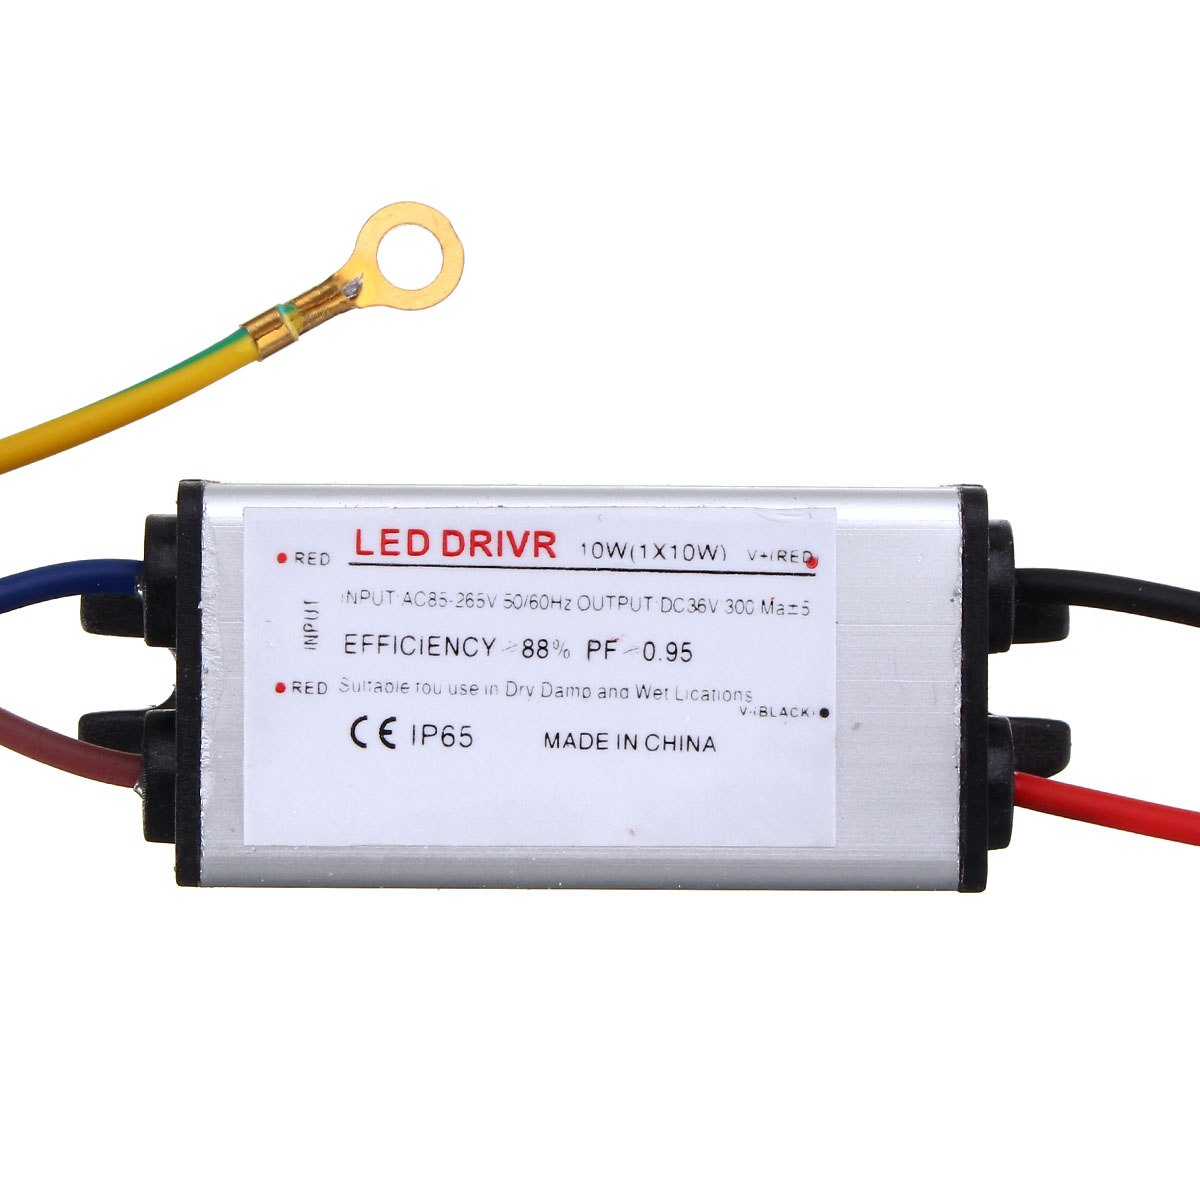 5W Waterproof High Power Supply SMD Chip LED Driver for DIY Flood Light AC85-265V